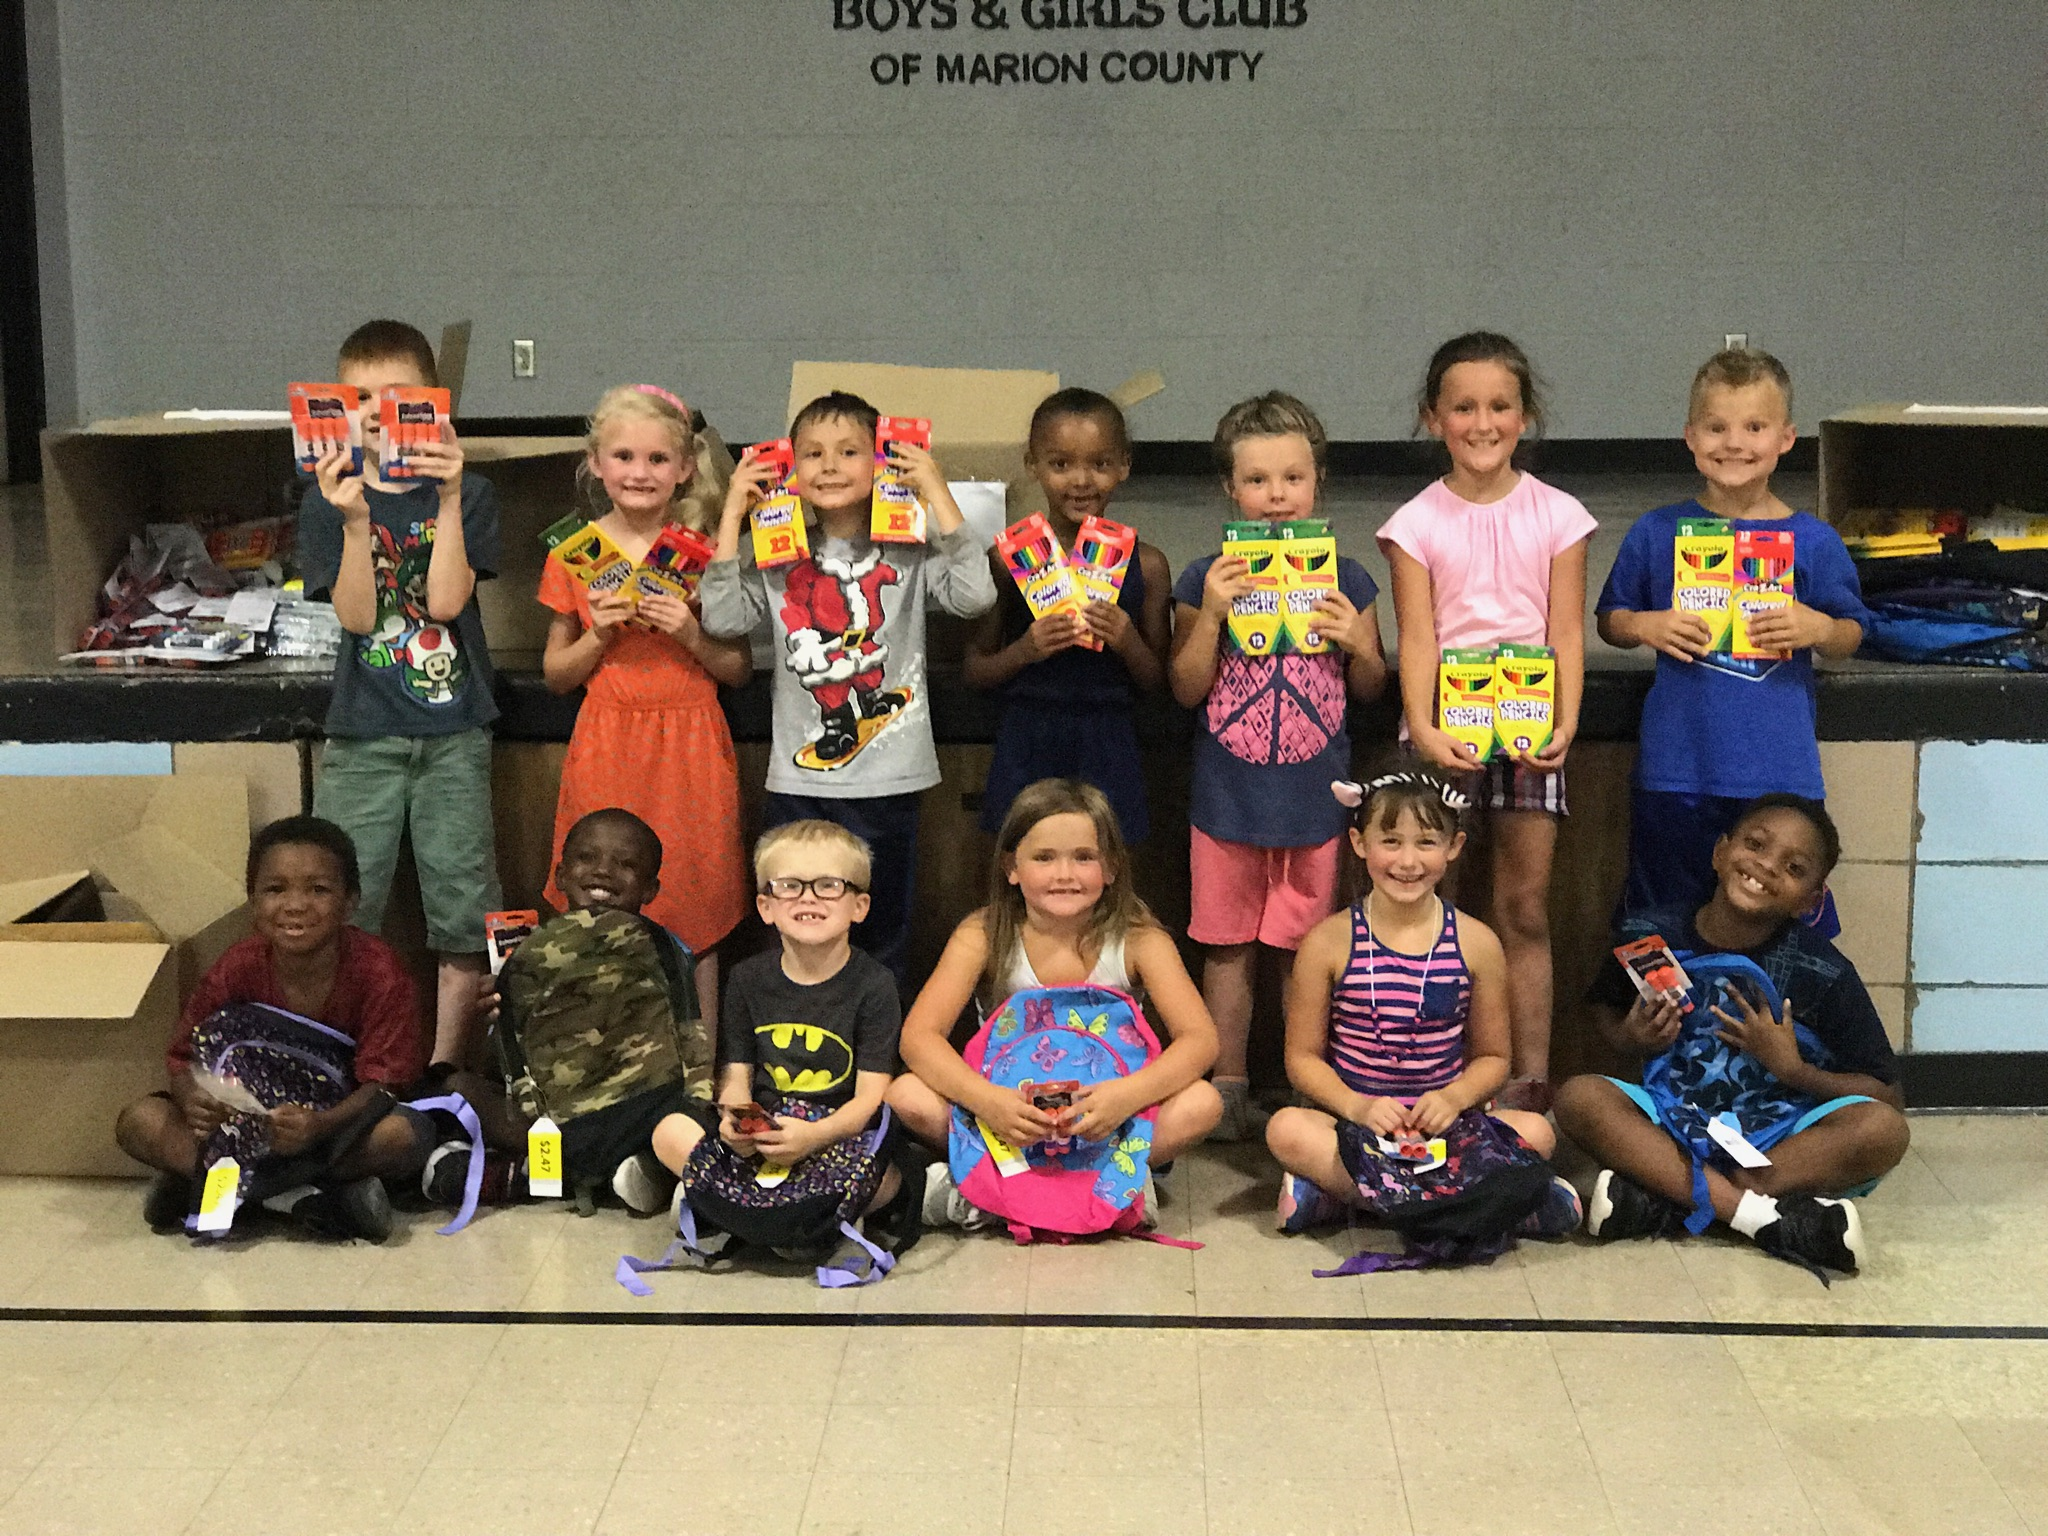 Marion County Boys and Girls Club school supply drive